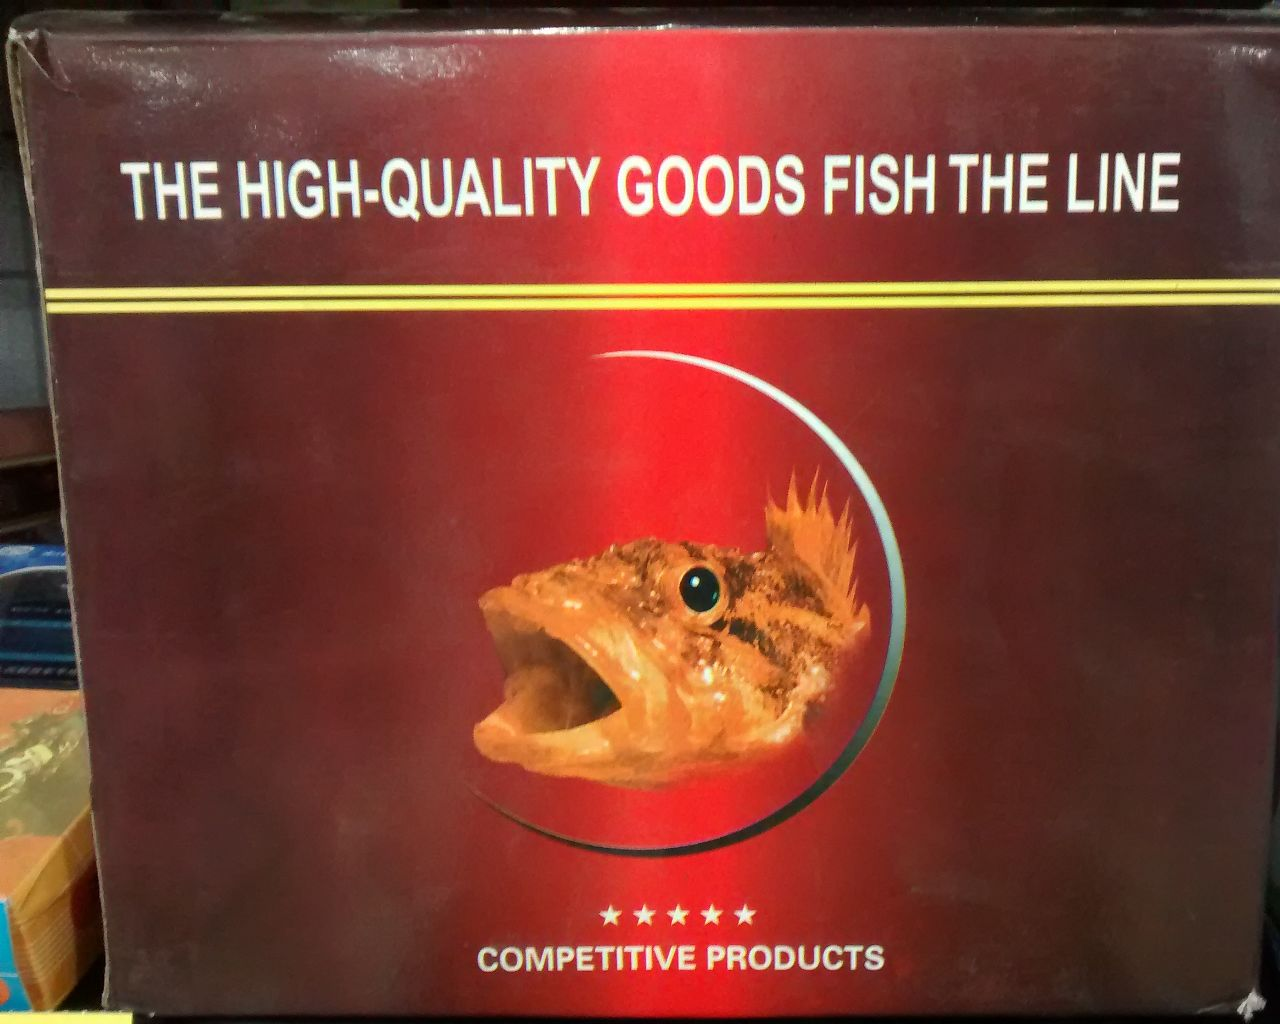 The High-Quality Goods Fish the Line. Competitive Products